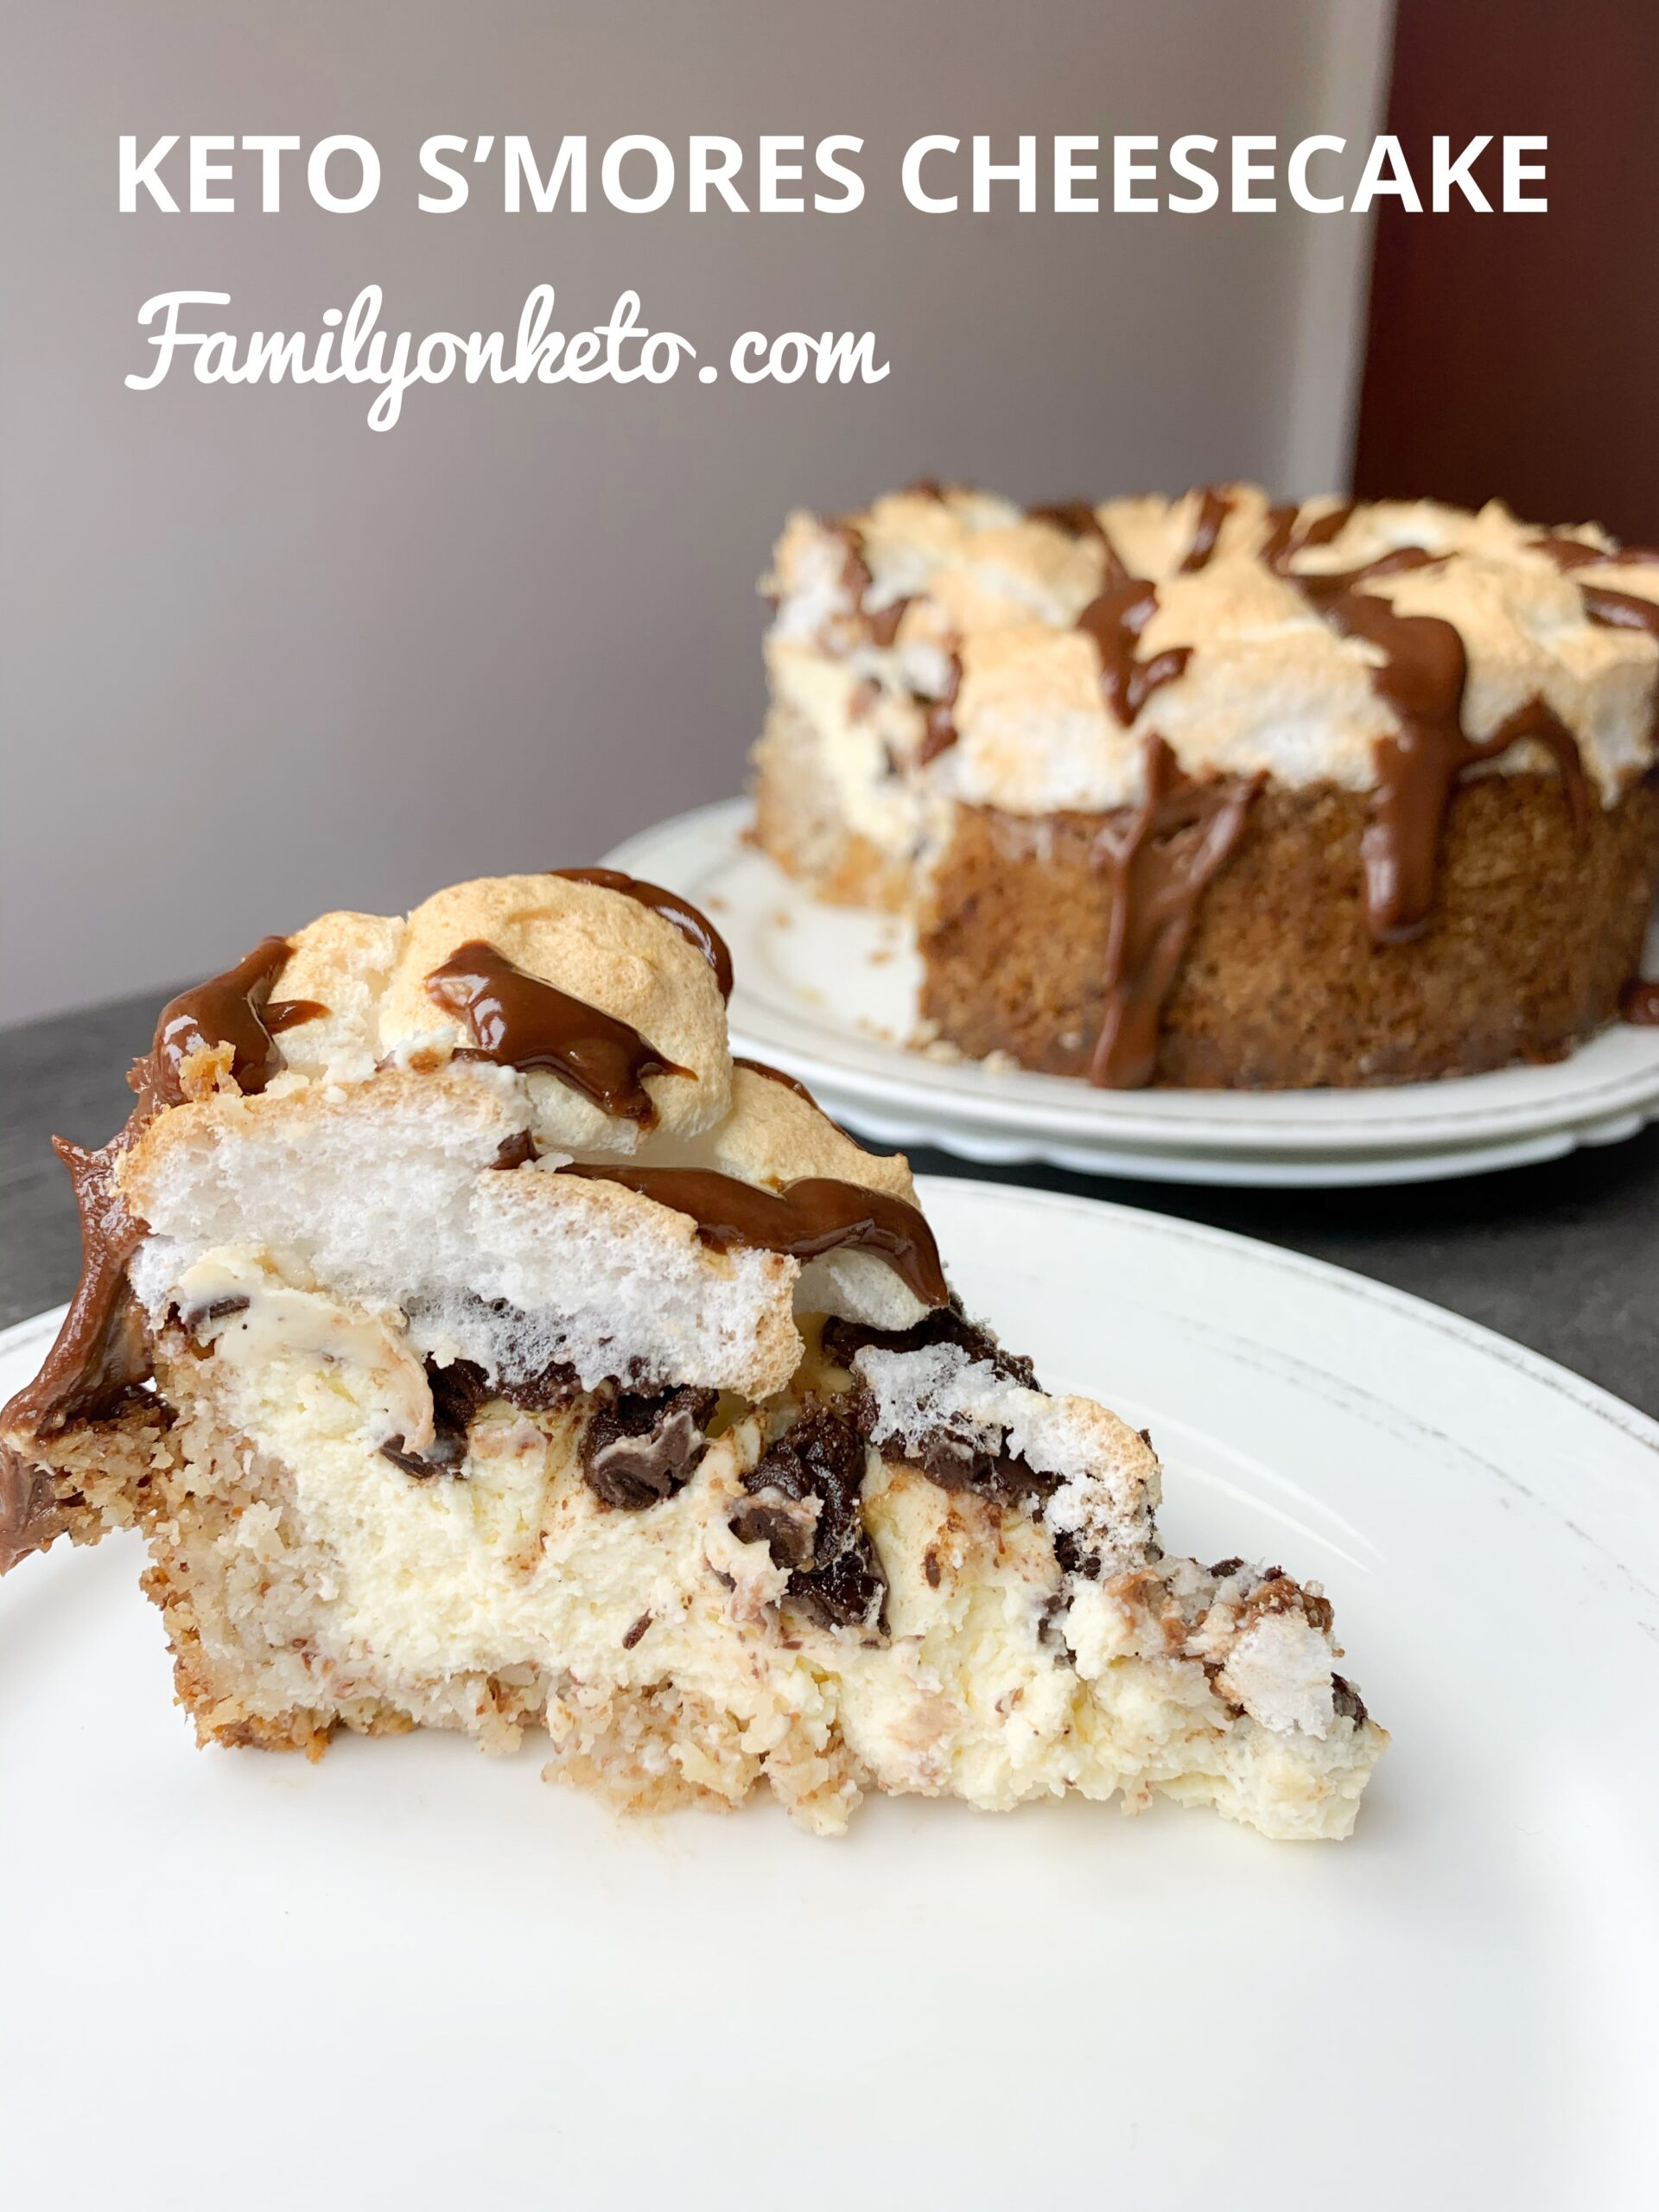 Picture of keto S'mores cheesecake